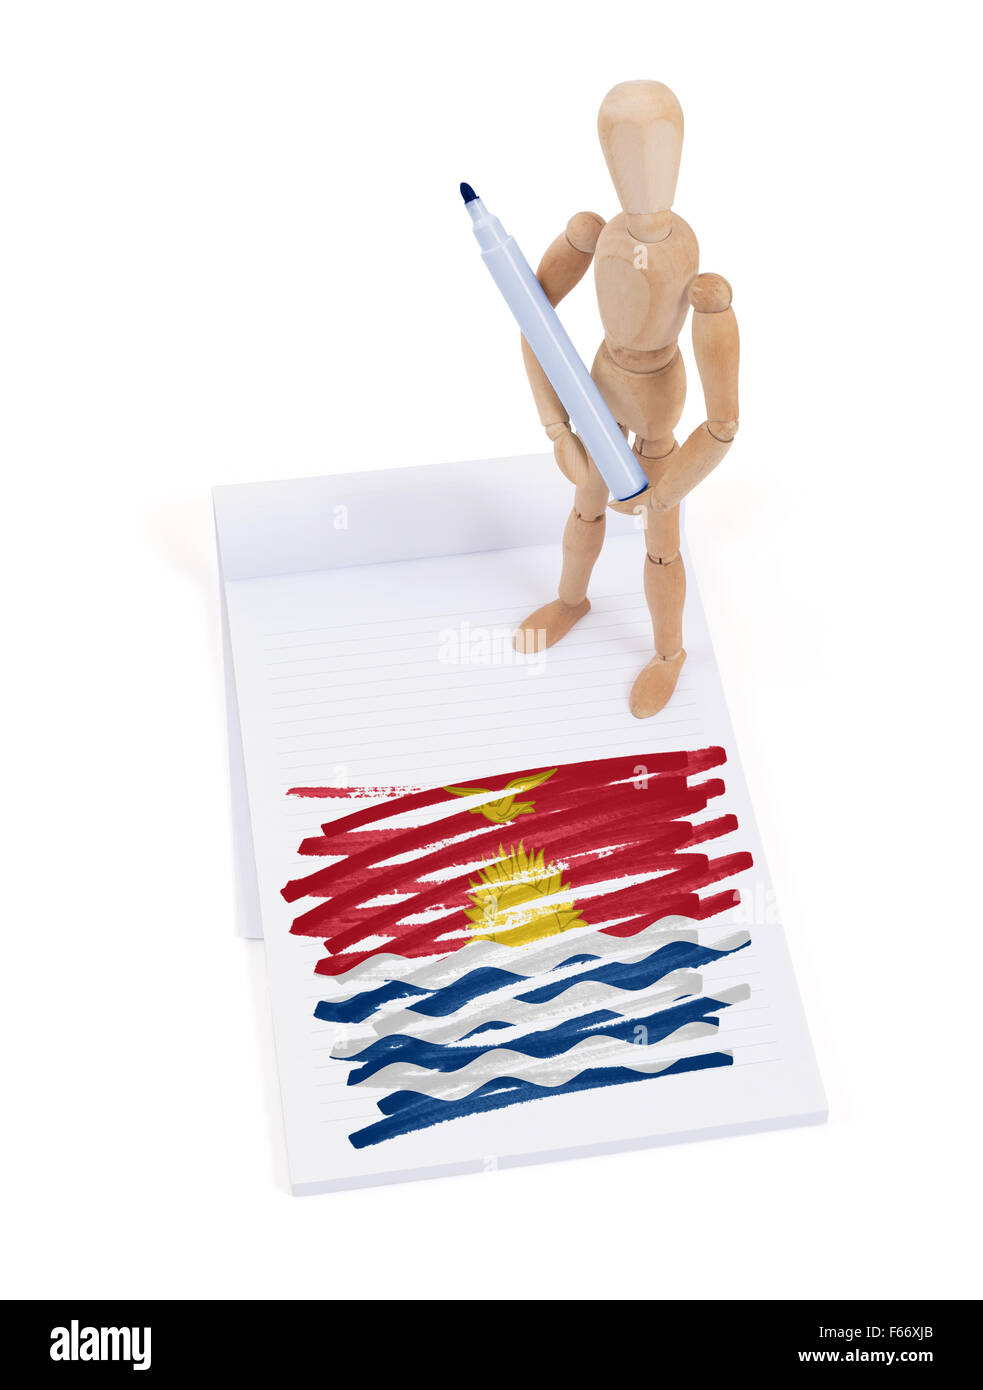 Wooden mannequin made a drawing of a flag - Kiribati - Stock Image